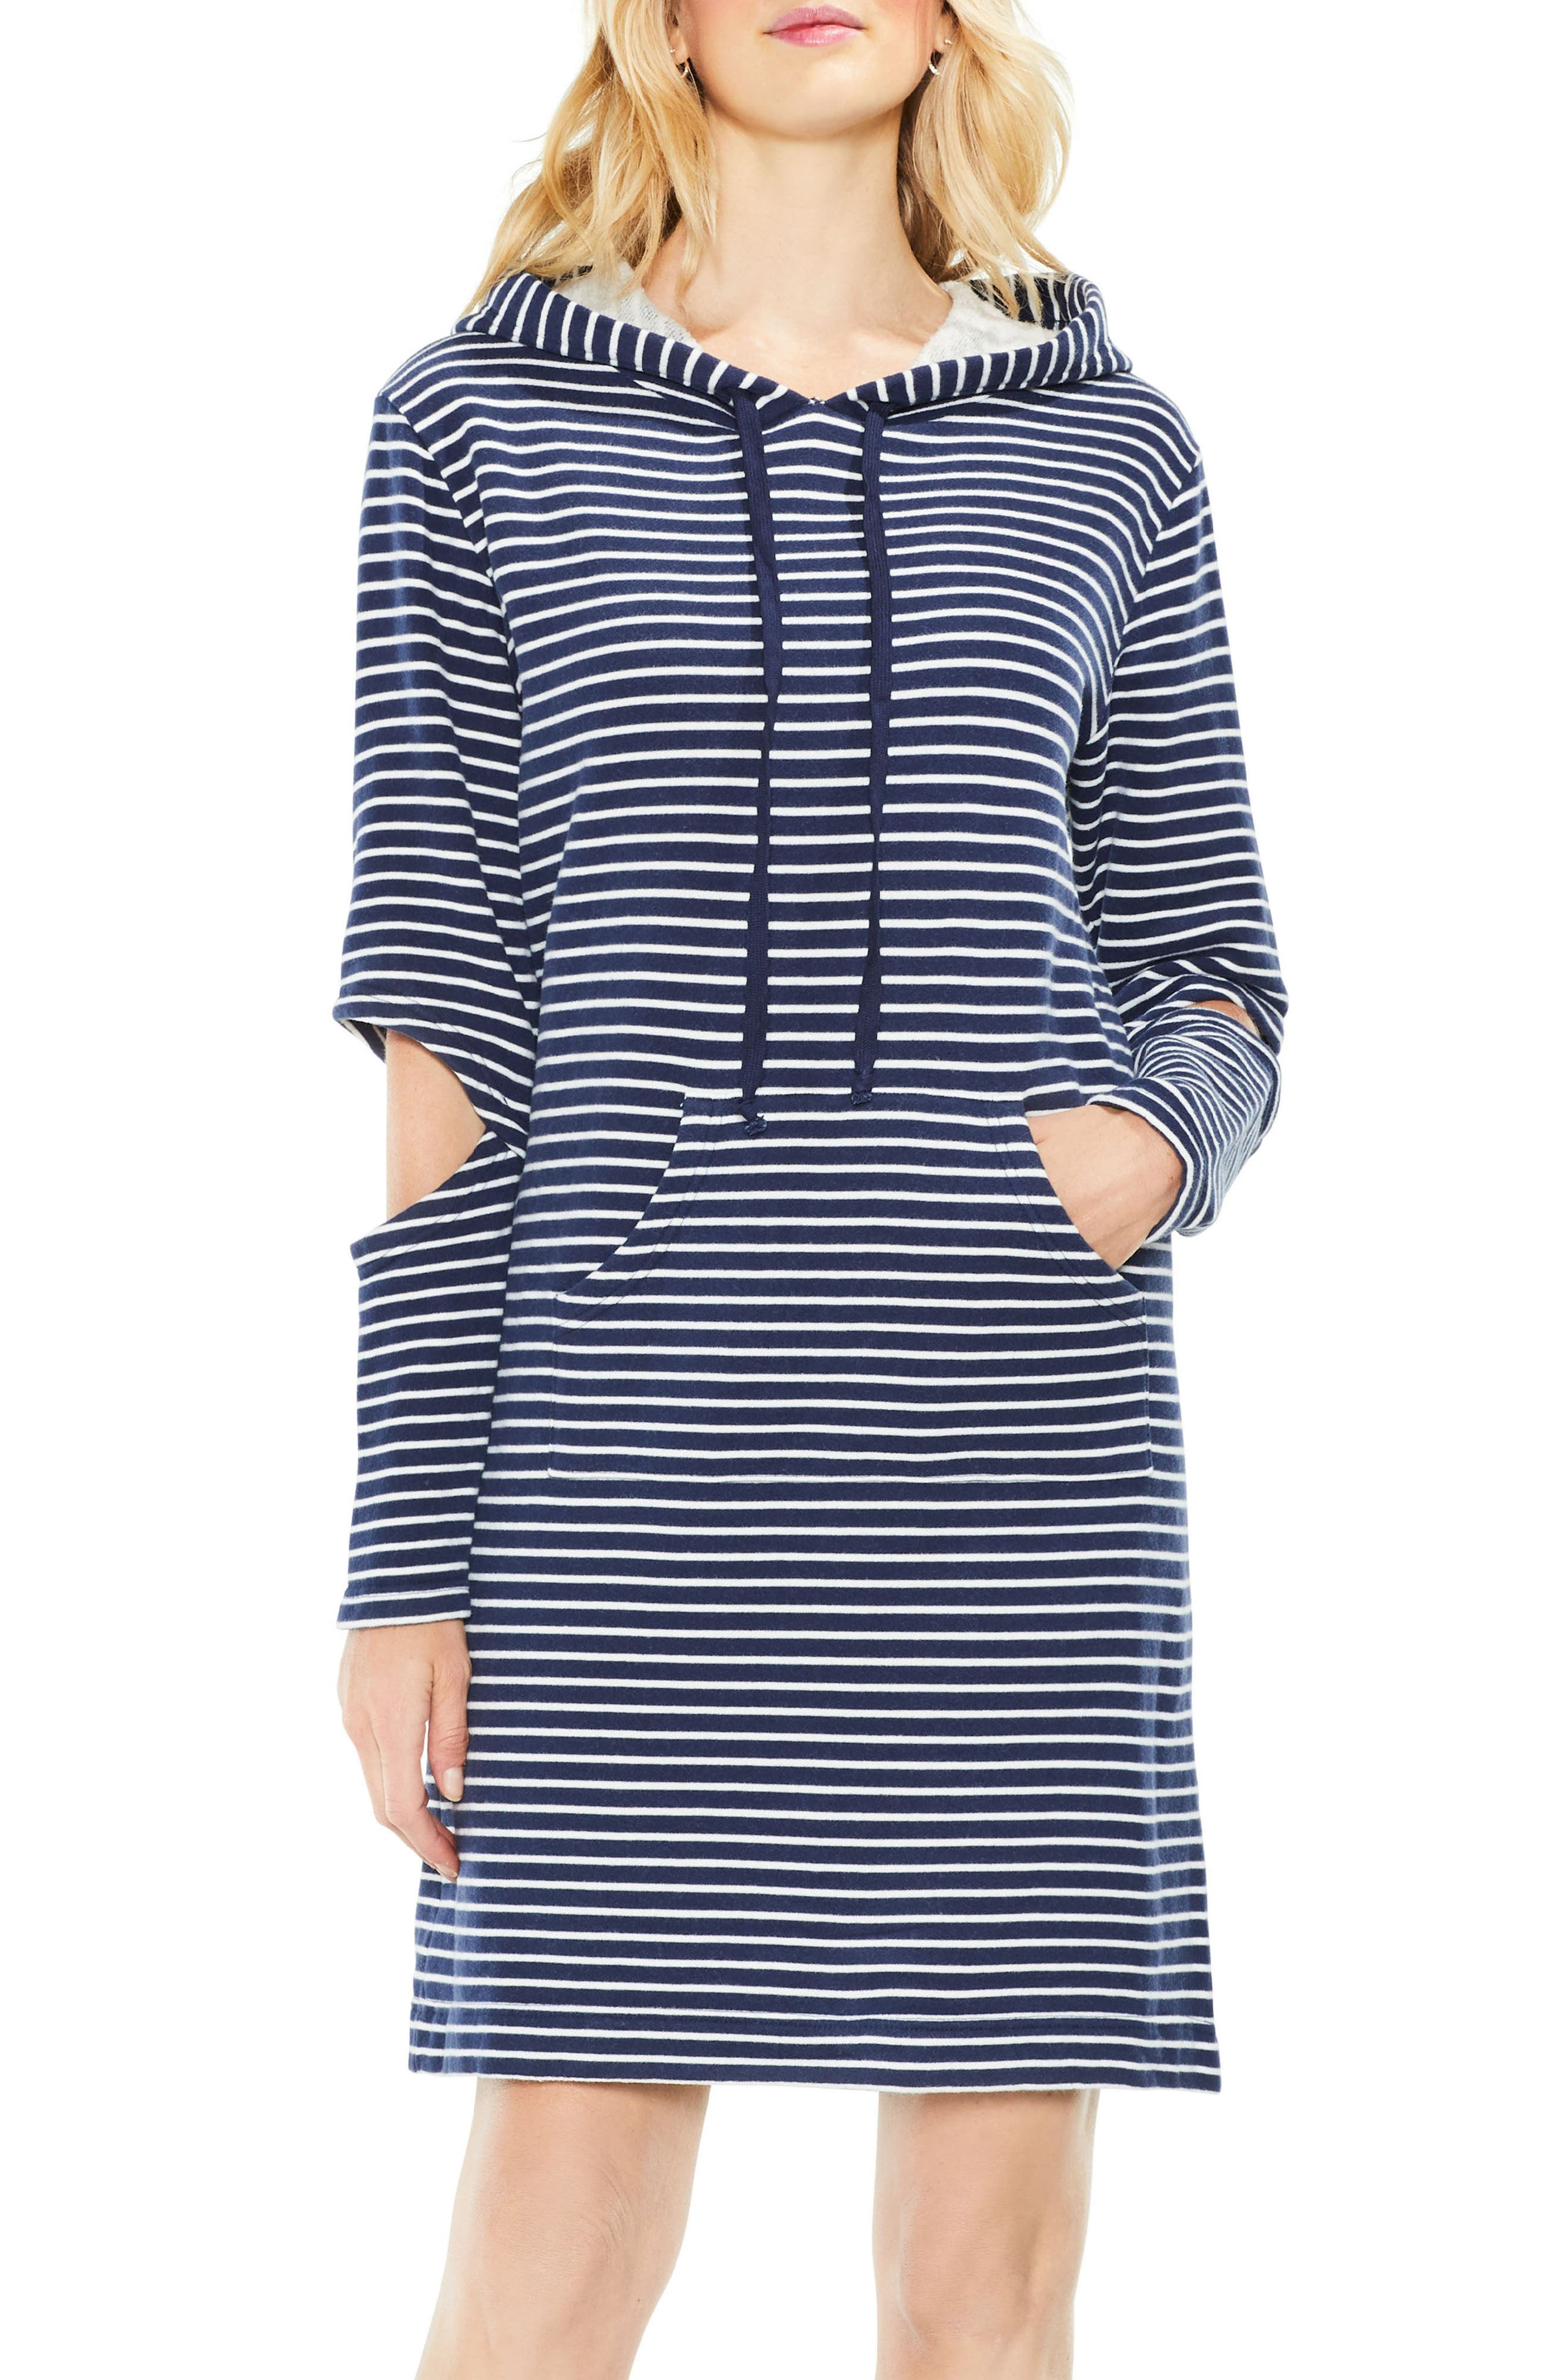 Alternate Image 1 Selected - Two by Vince Camuto Daydream Stripe Hooded Dress